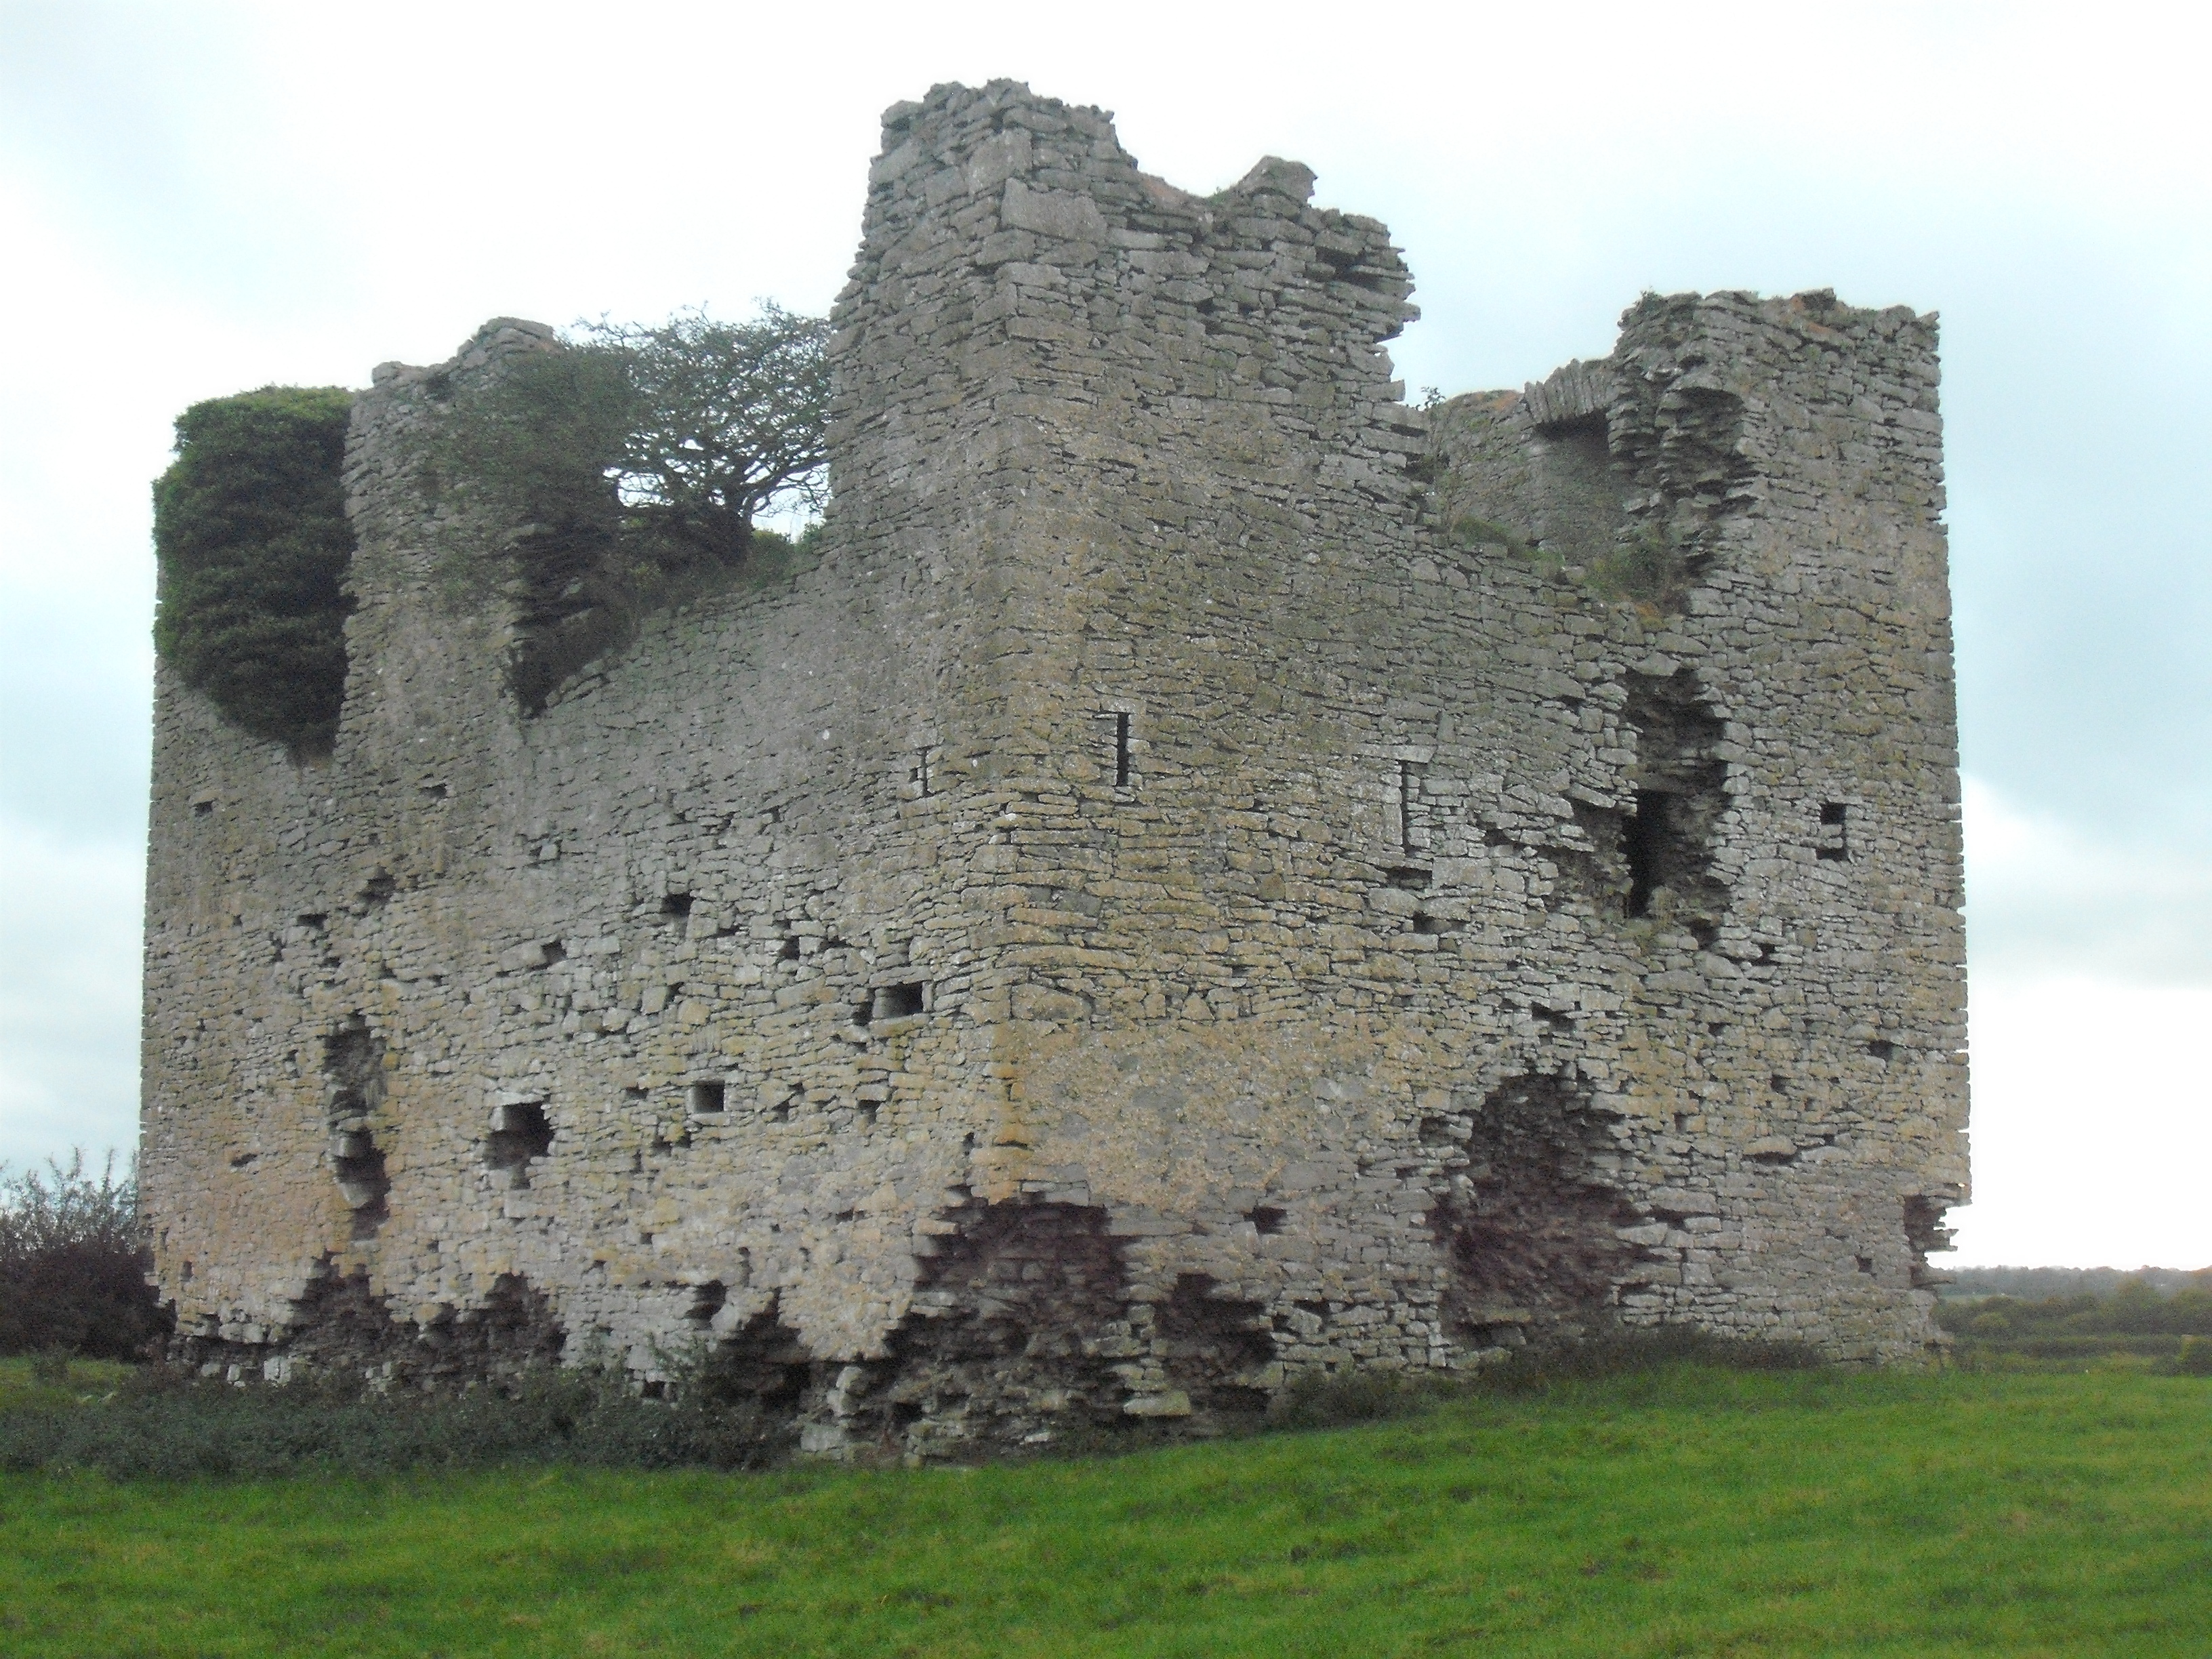 Kilbreedy Towerhouse